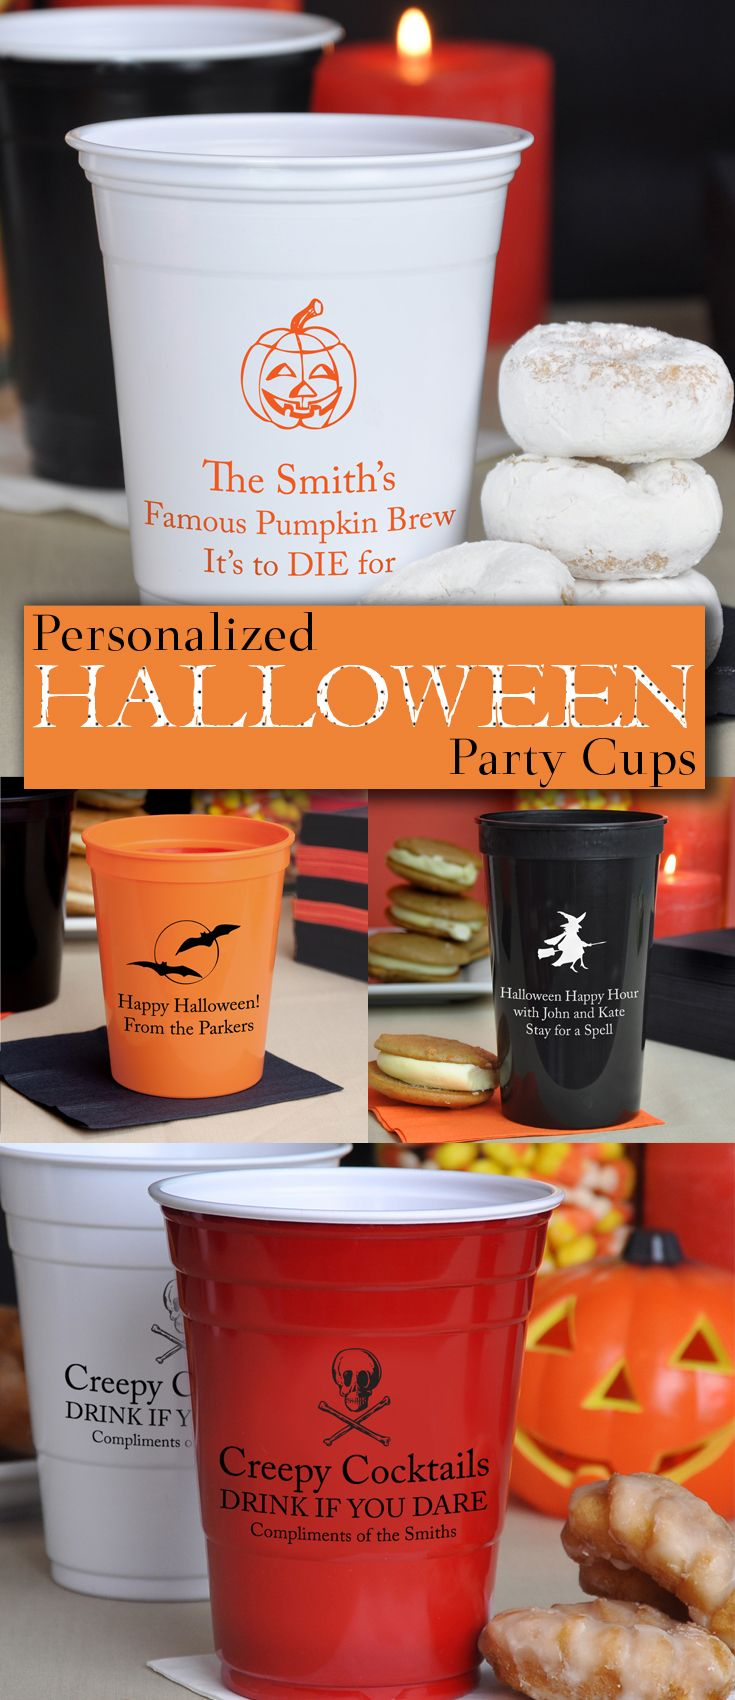 Plastic stadium, Solo or Styrofoam cups personalized with a Halloween design and up to 4 lines of custom print on the front and back will add fun and interest to your Halloween wedding reception or party. Great conversation starters and affordable souvenirs to take home, guests love personalized cups. These Halloween cups can be ordered in a variety of sizes at http://myweddingreceptionideas.com/halloween_party_cups.asp